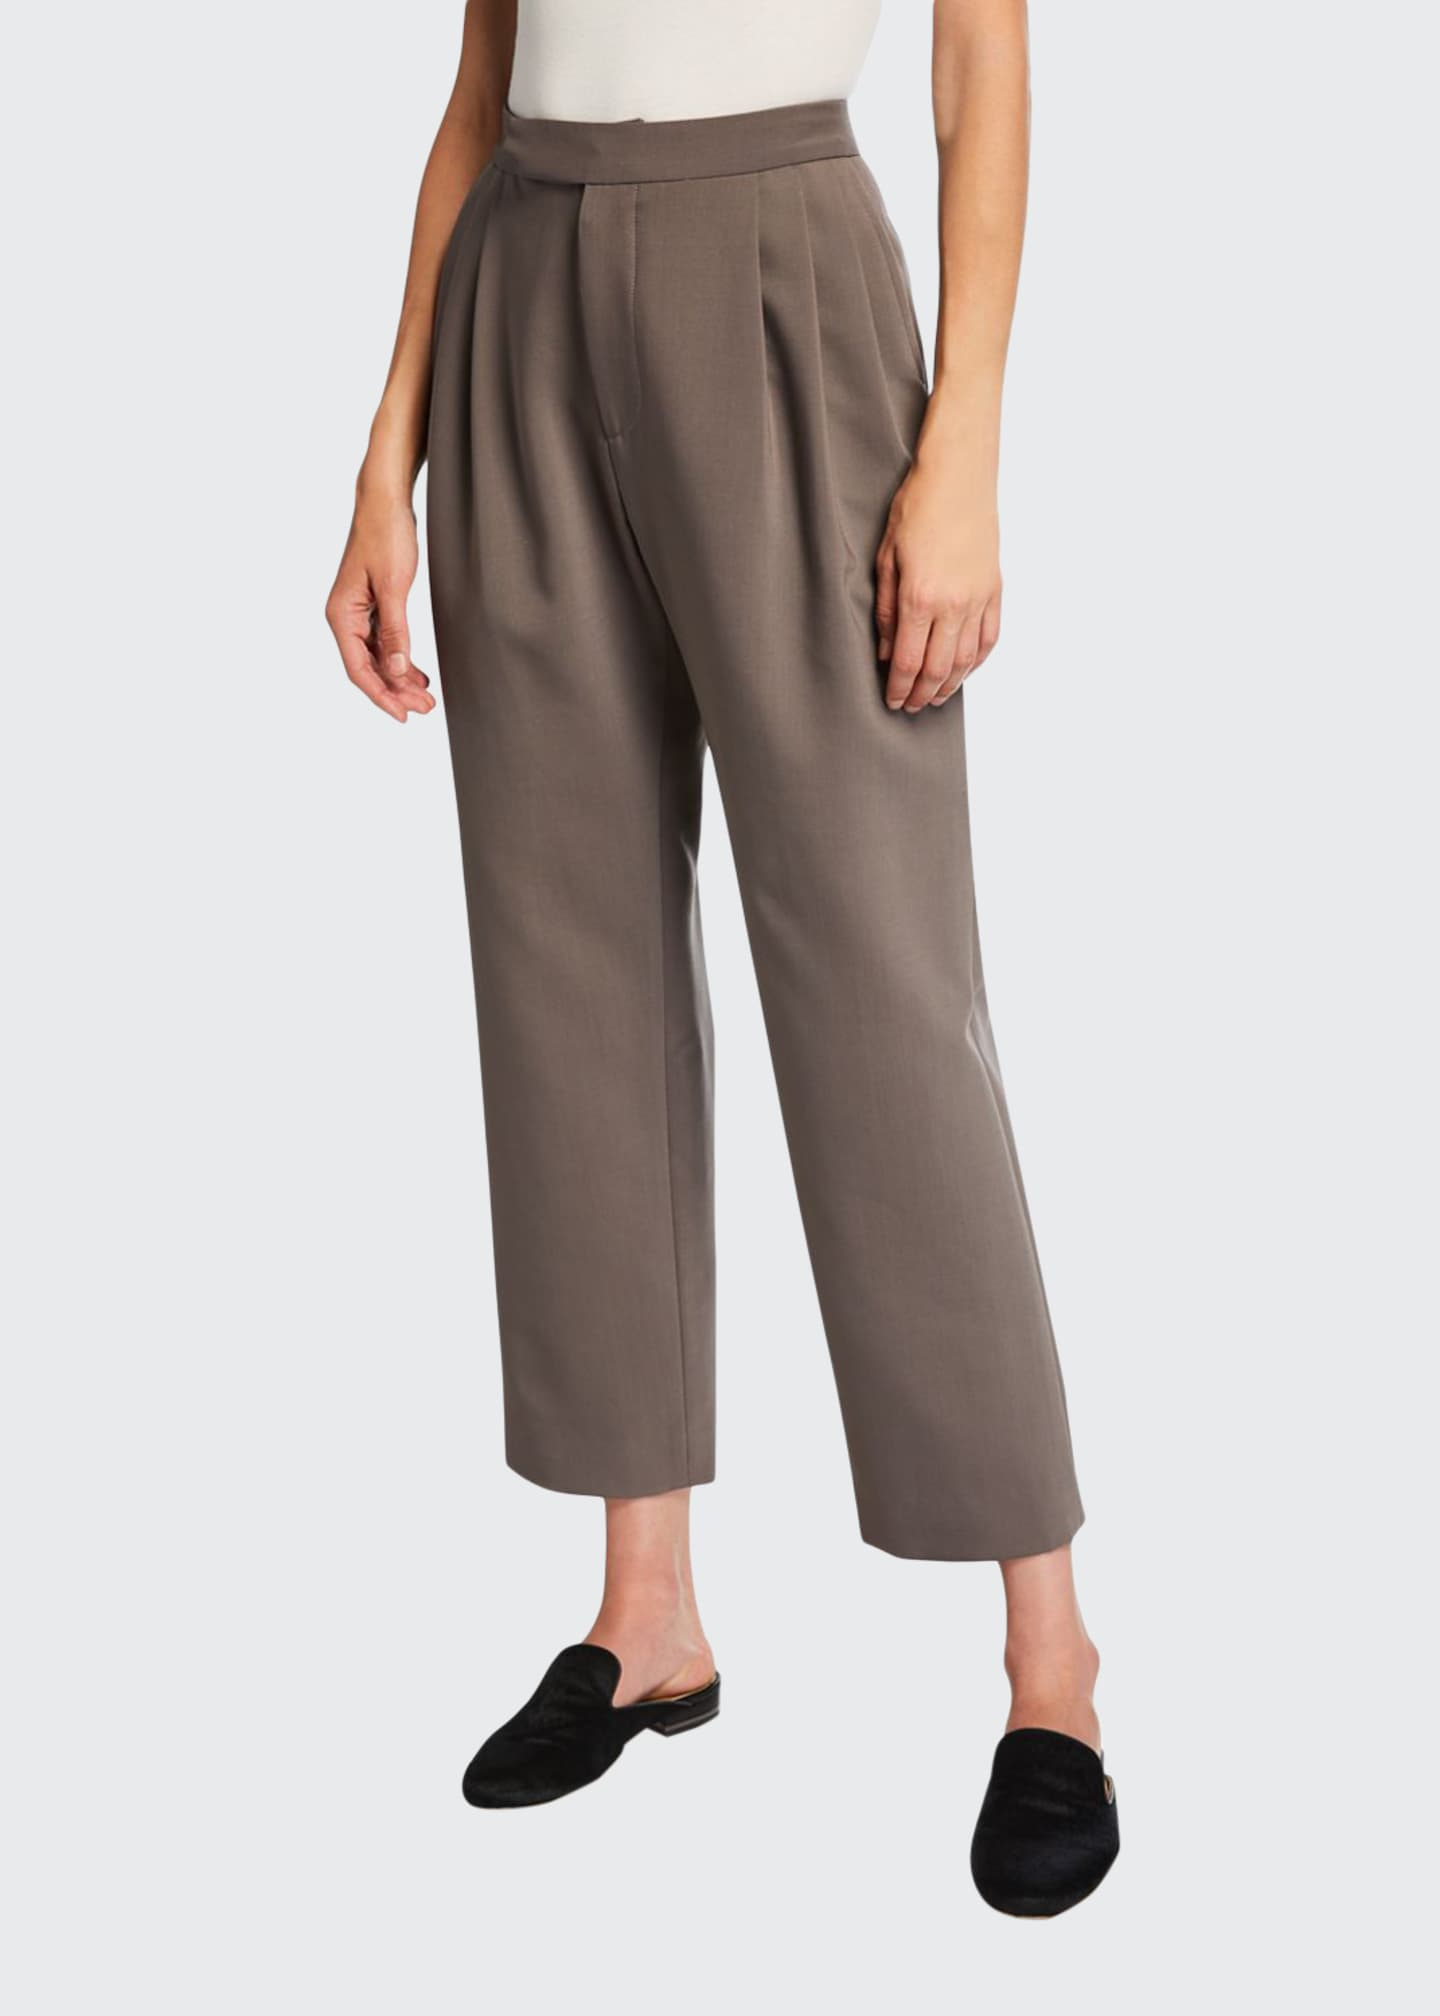 Deveaux New York Isabella Bonded Wool Crop Pants